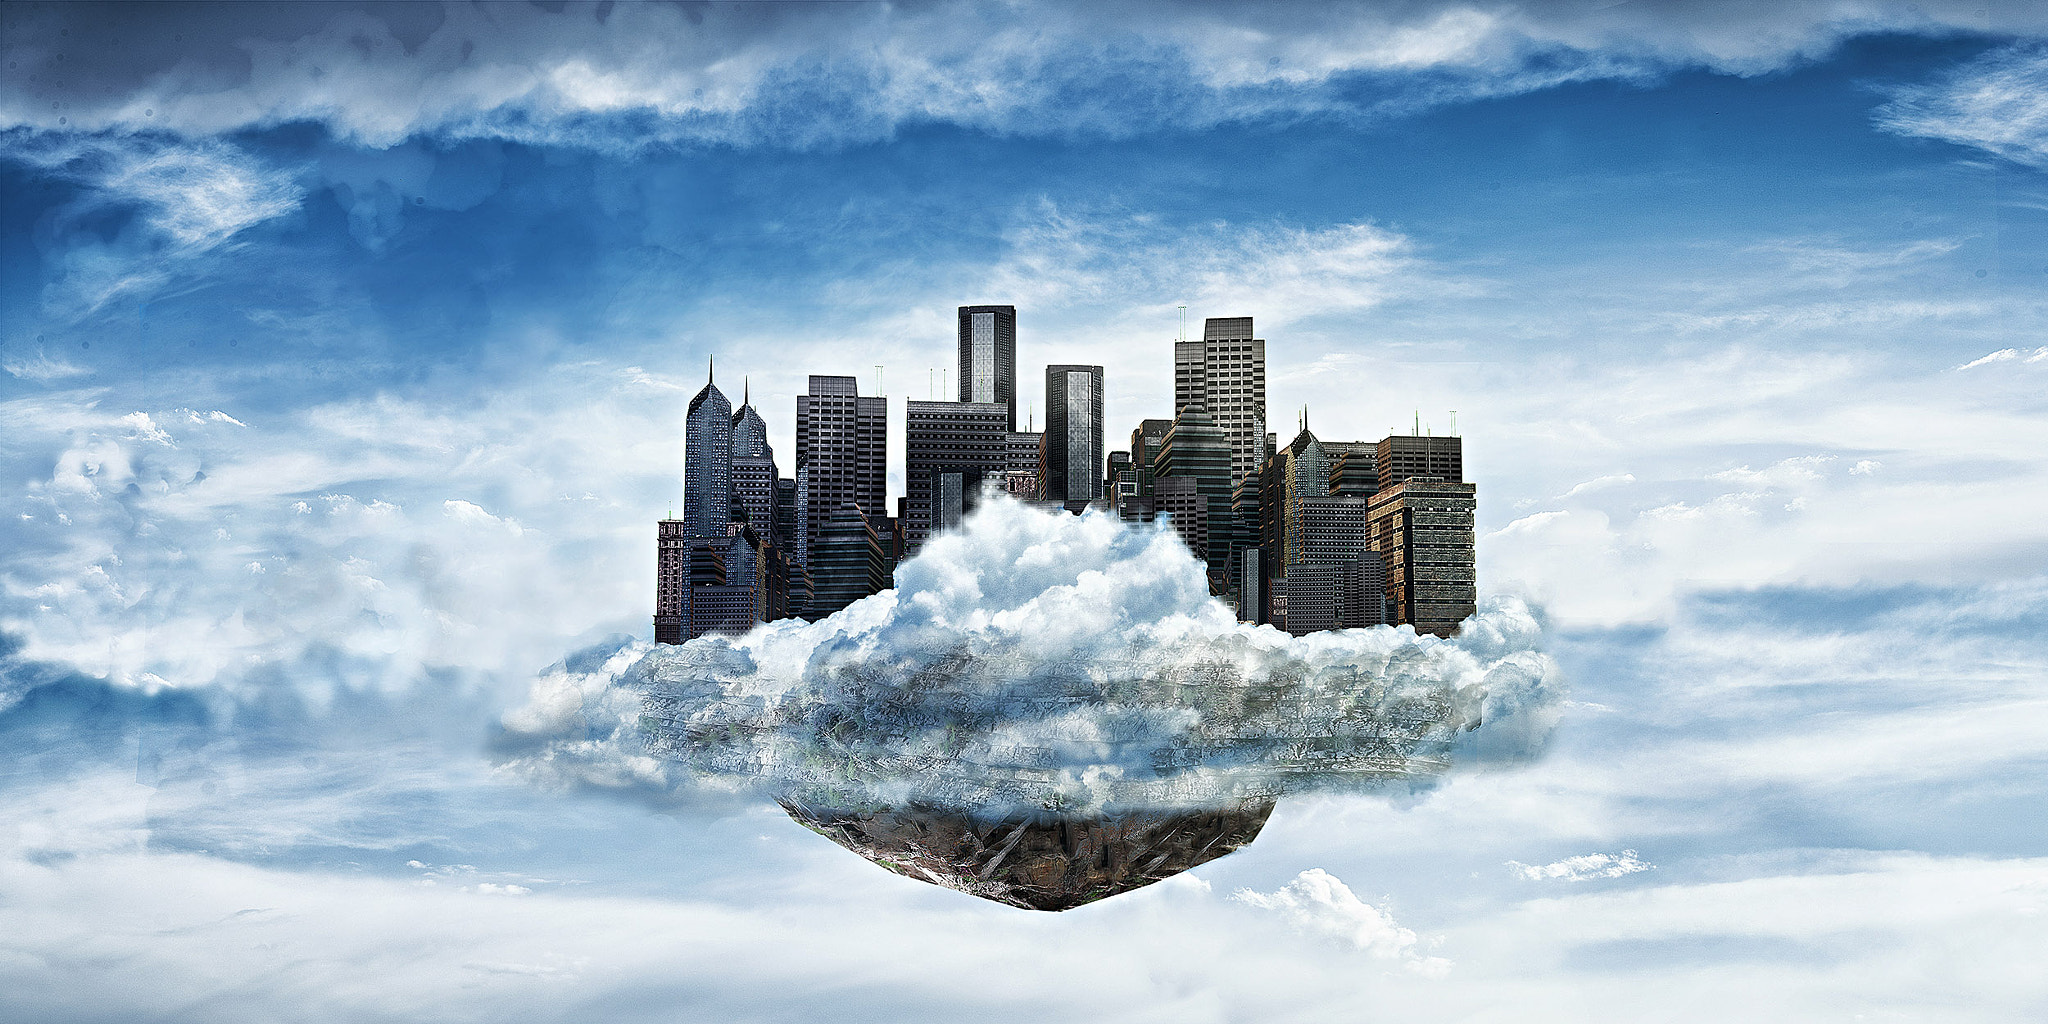 Photograph Cloudy City by Ali Arabzadeh on 500px